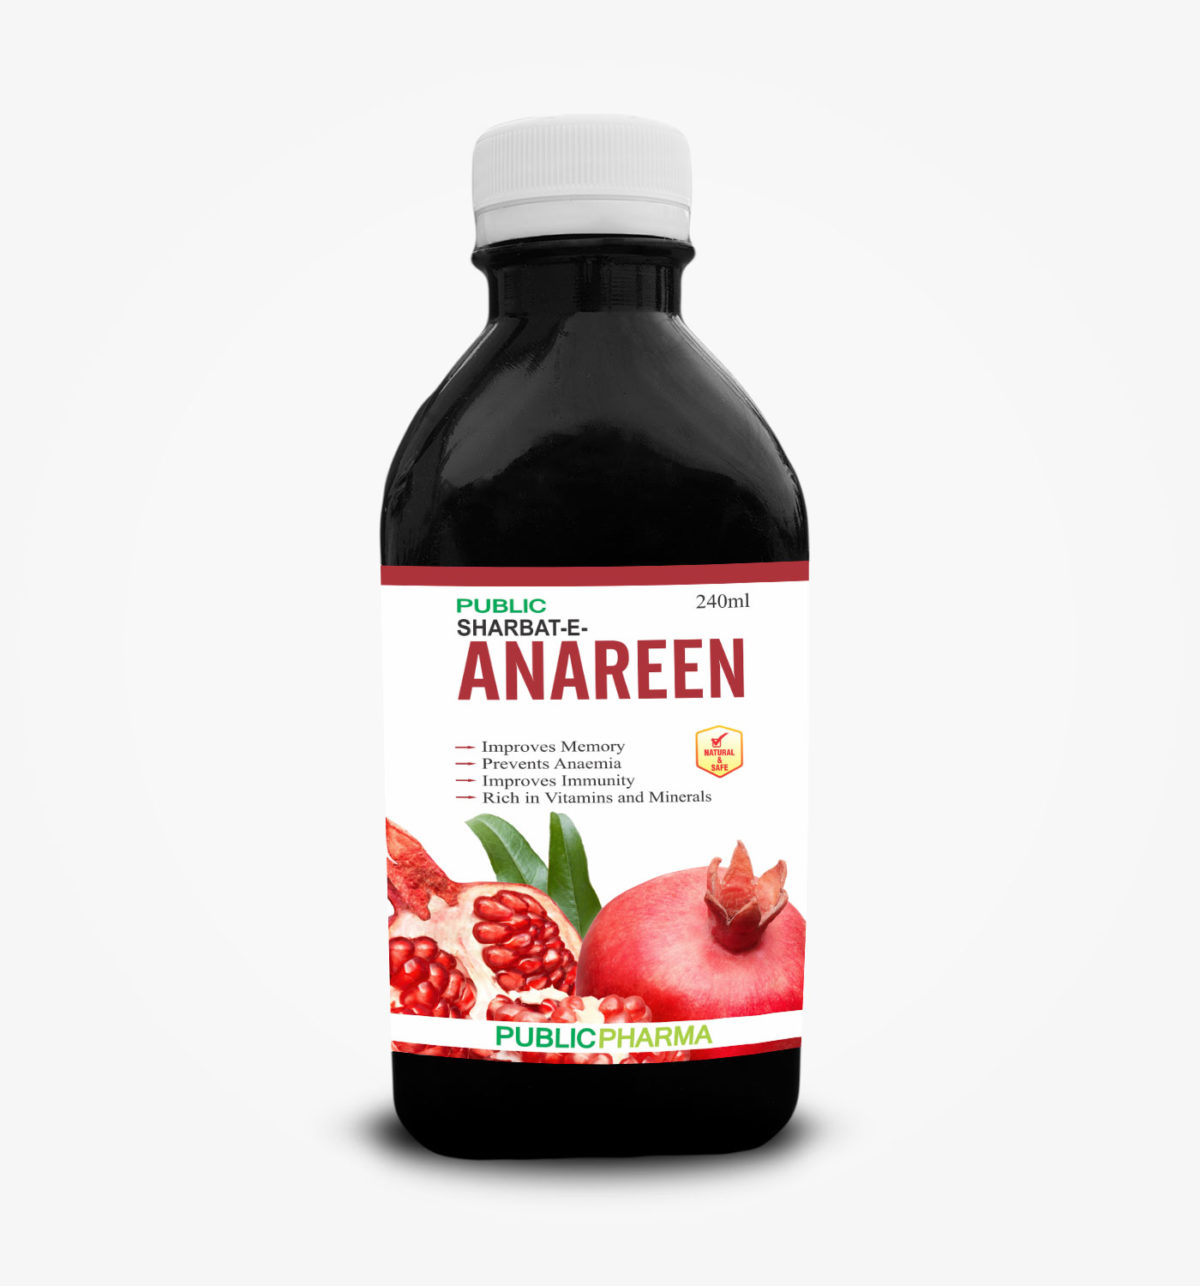 Prevents Anaemia,Improves Immunity, Improves Memory, Improves Digestion, Rich in Vitamins &Minerals